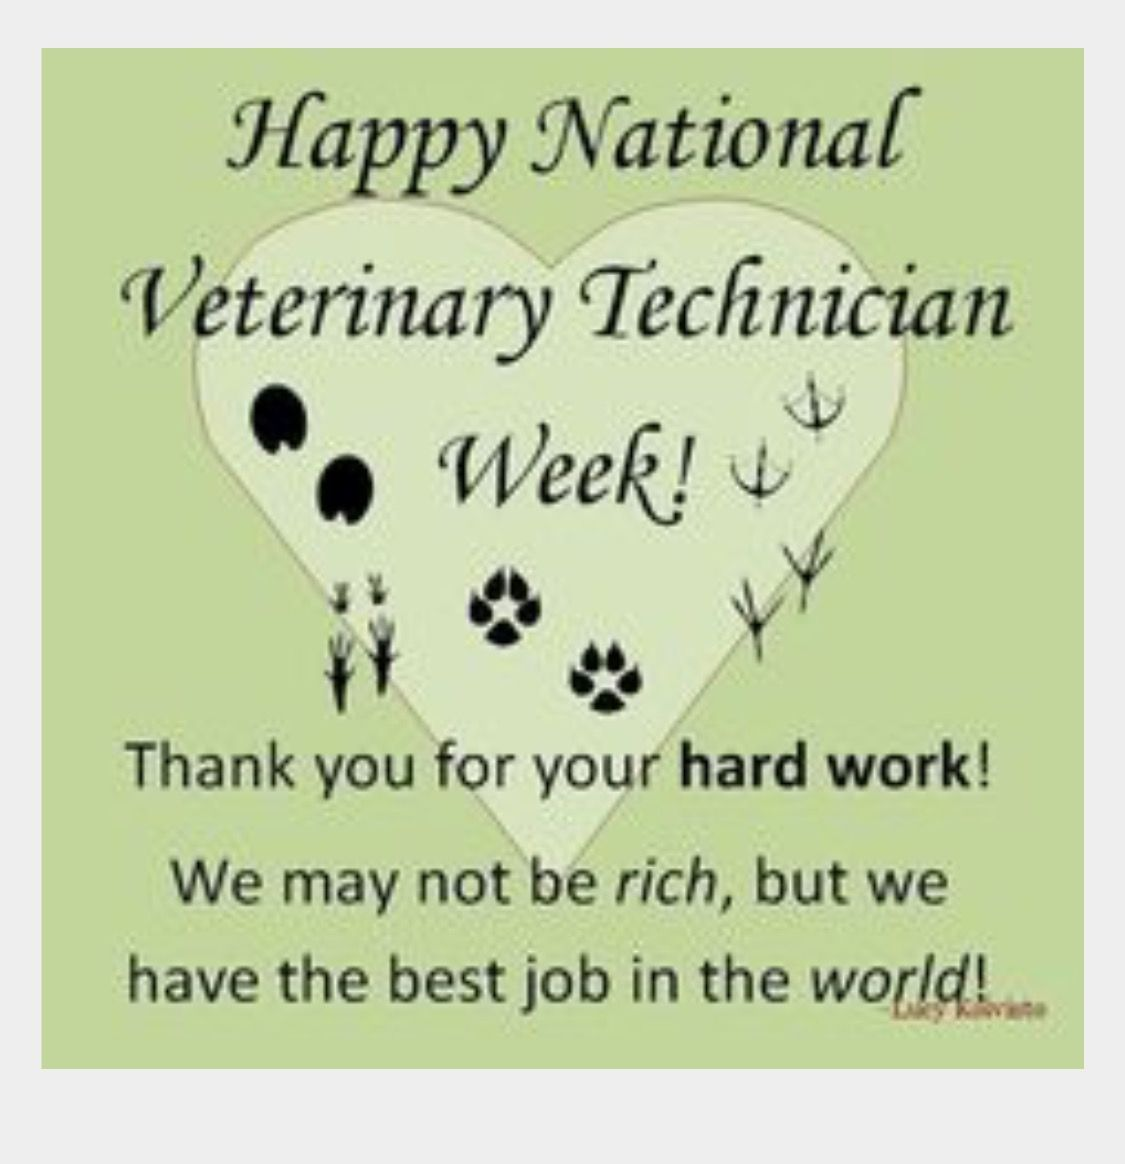 Pin by Lesa Fleming on Great quotes | Vet tech quotes, Vet ...